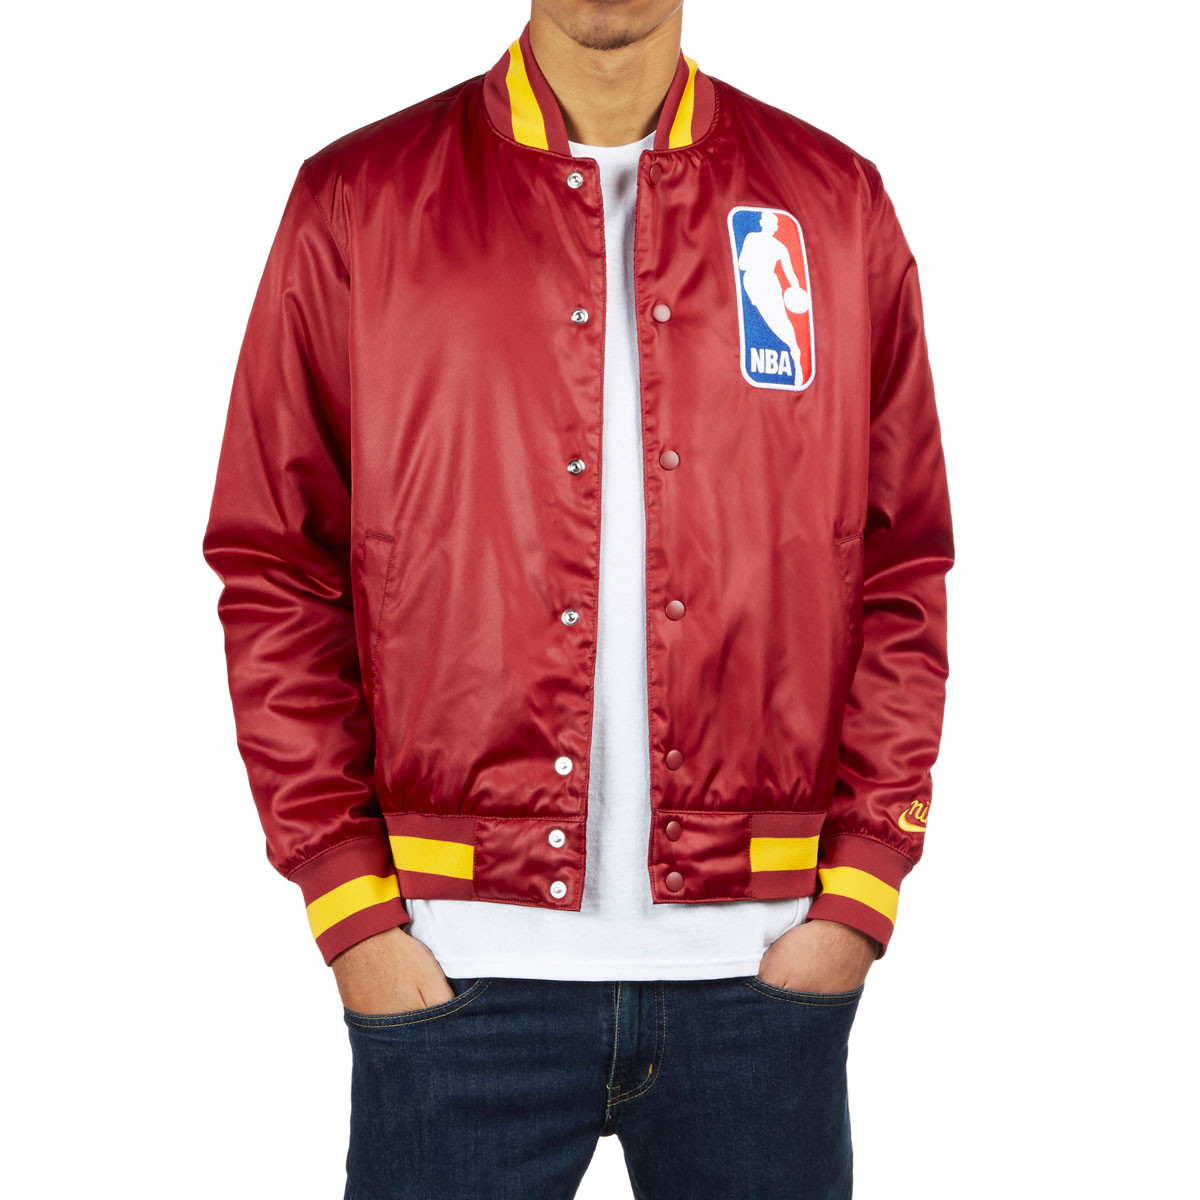 3479a448ccc2 Nike SB X NBA Cleveland Bomber Jacket - Team Red Team Red ...